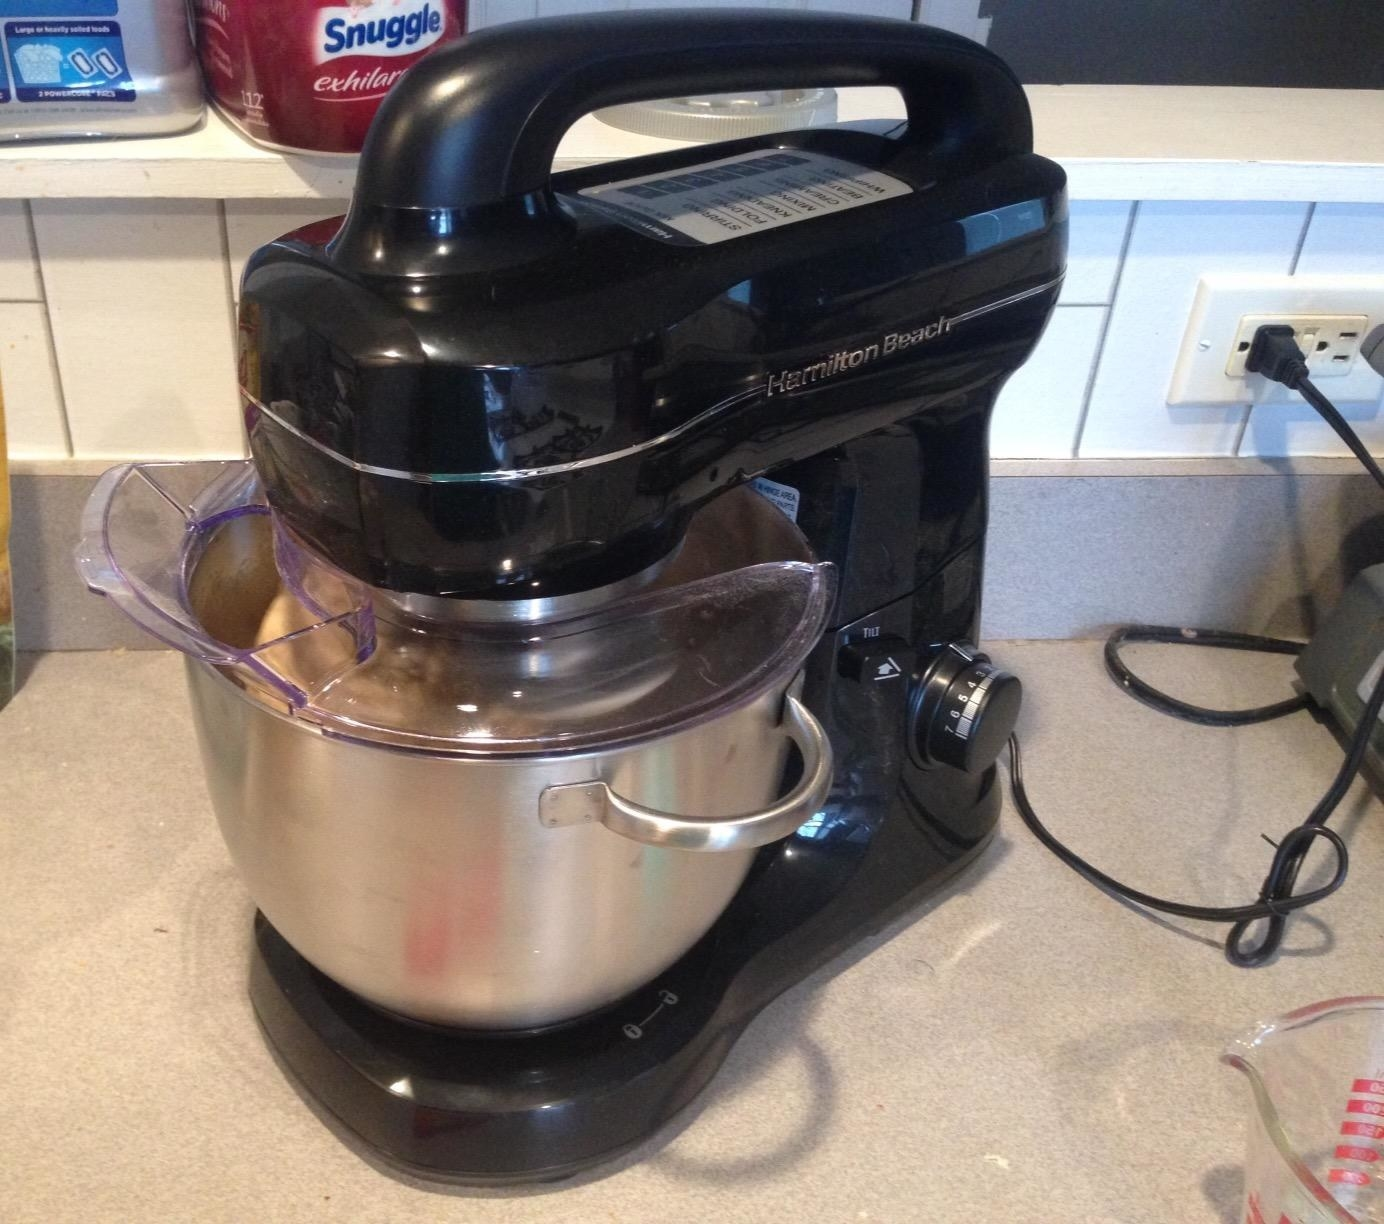 A reviewer photo of the mixer in use, with the splash guard on